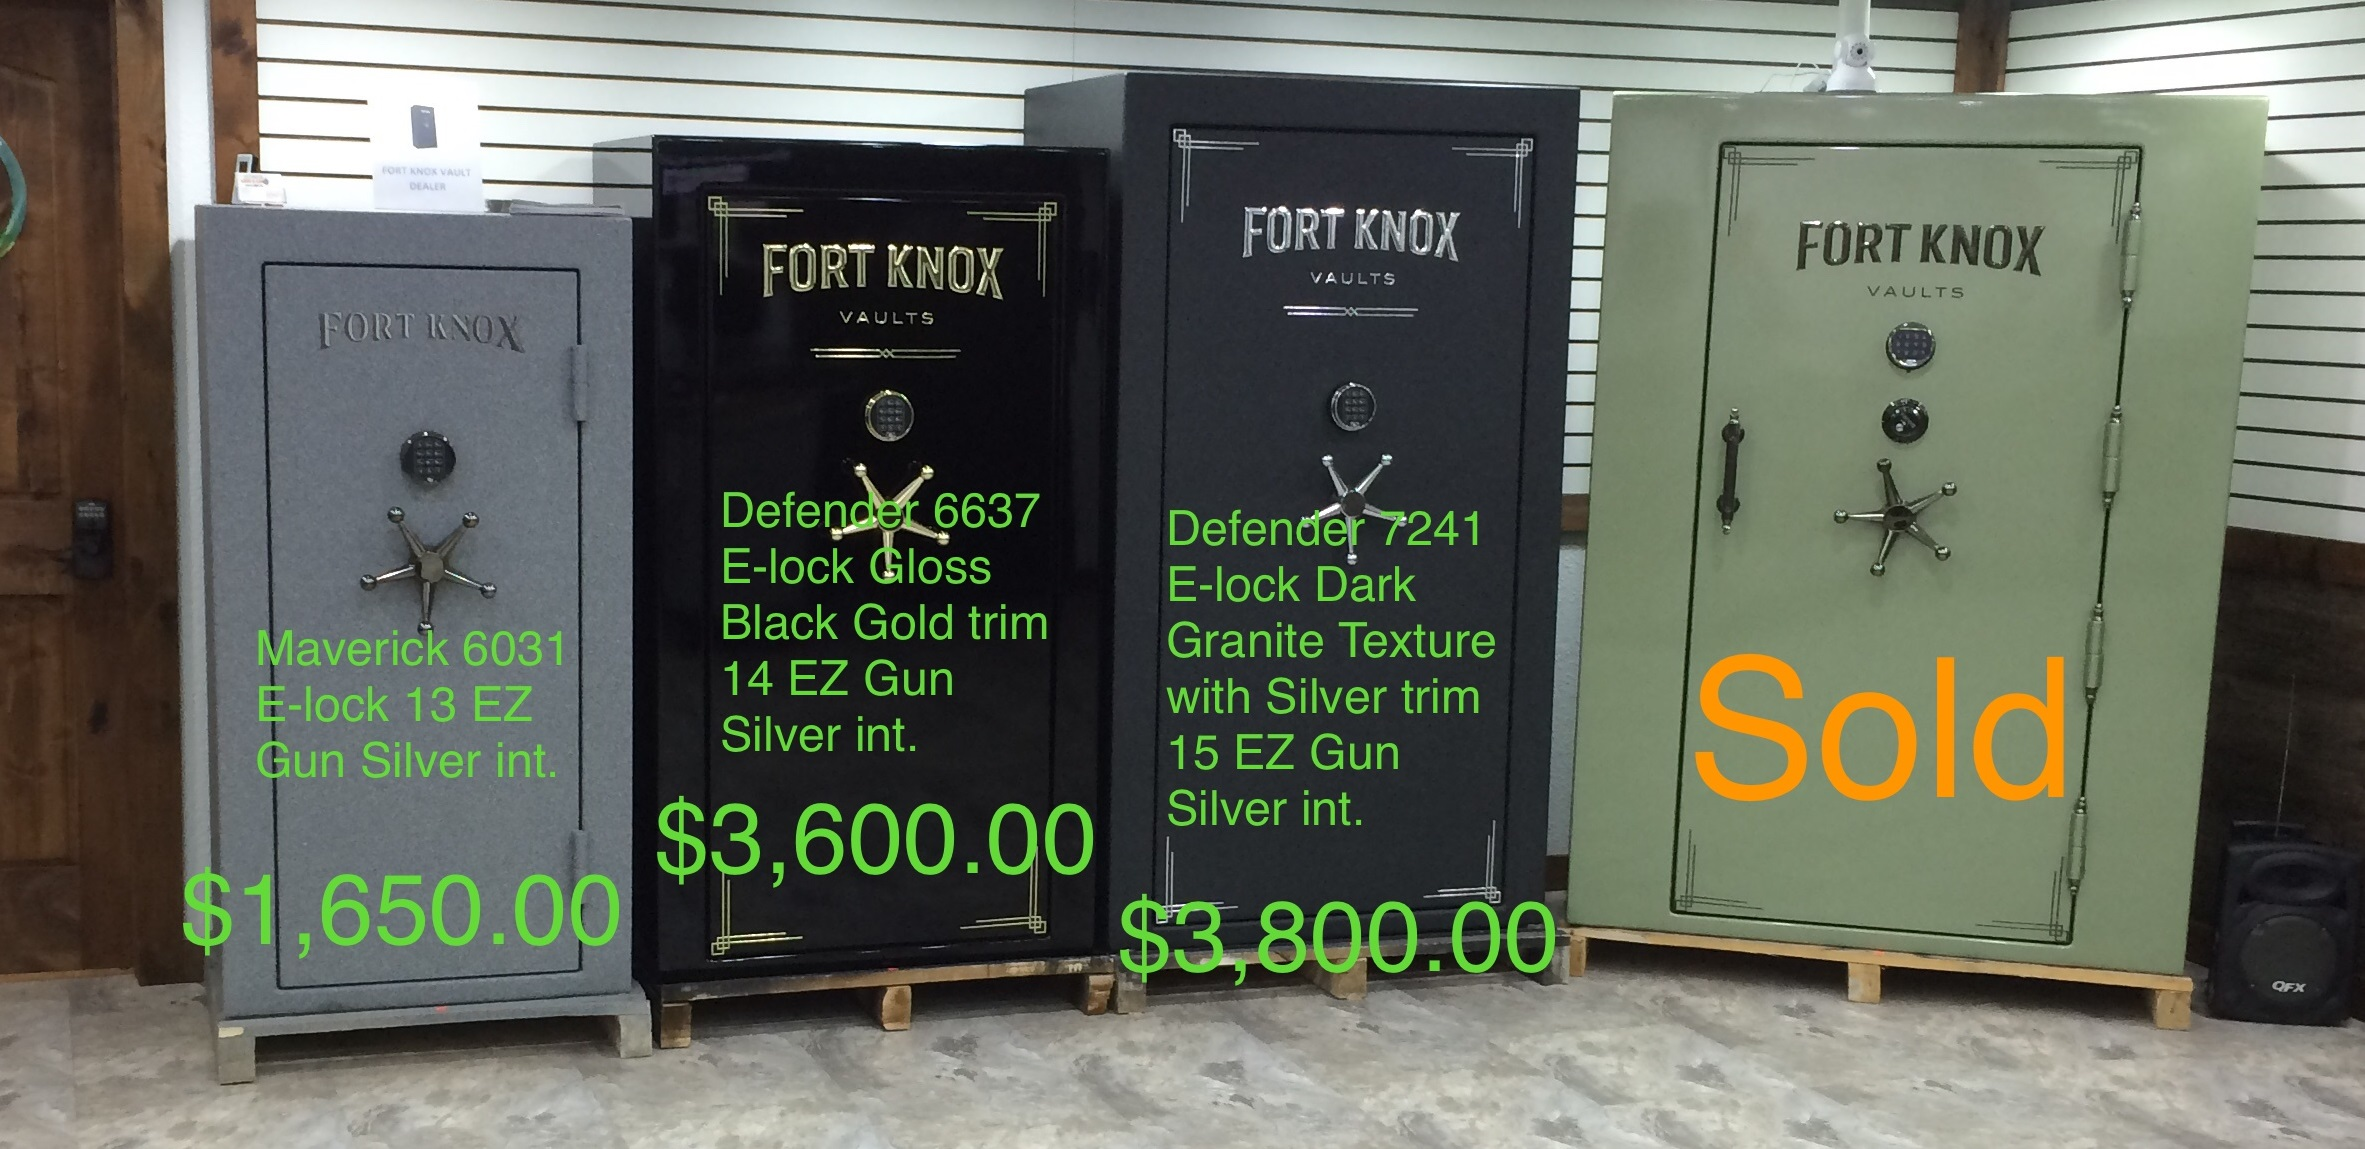 Fort Knox instock items